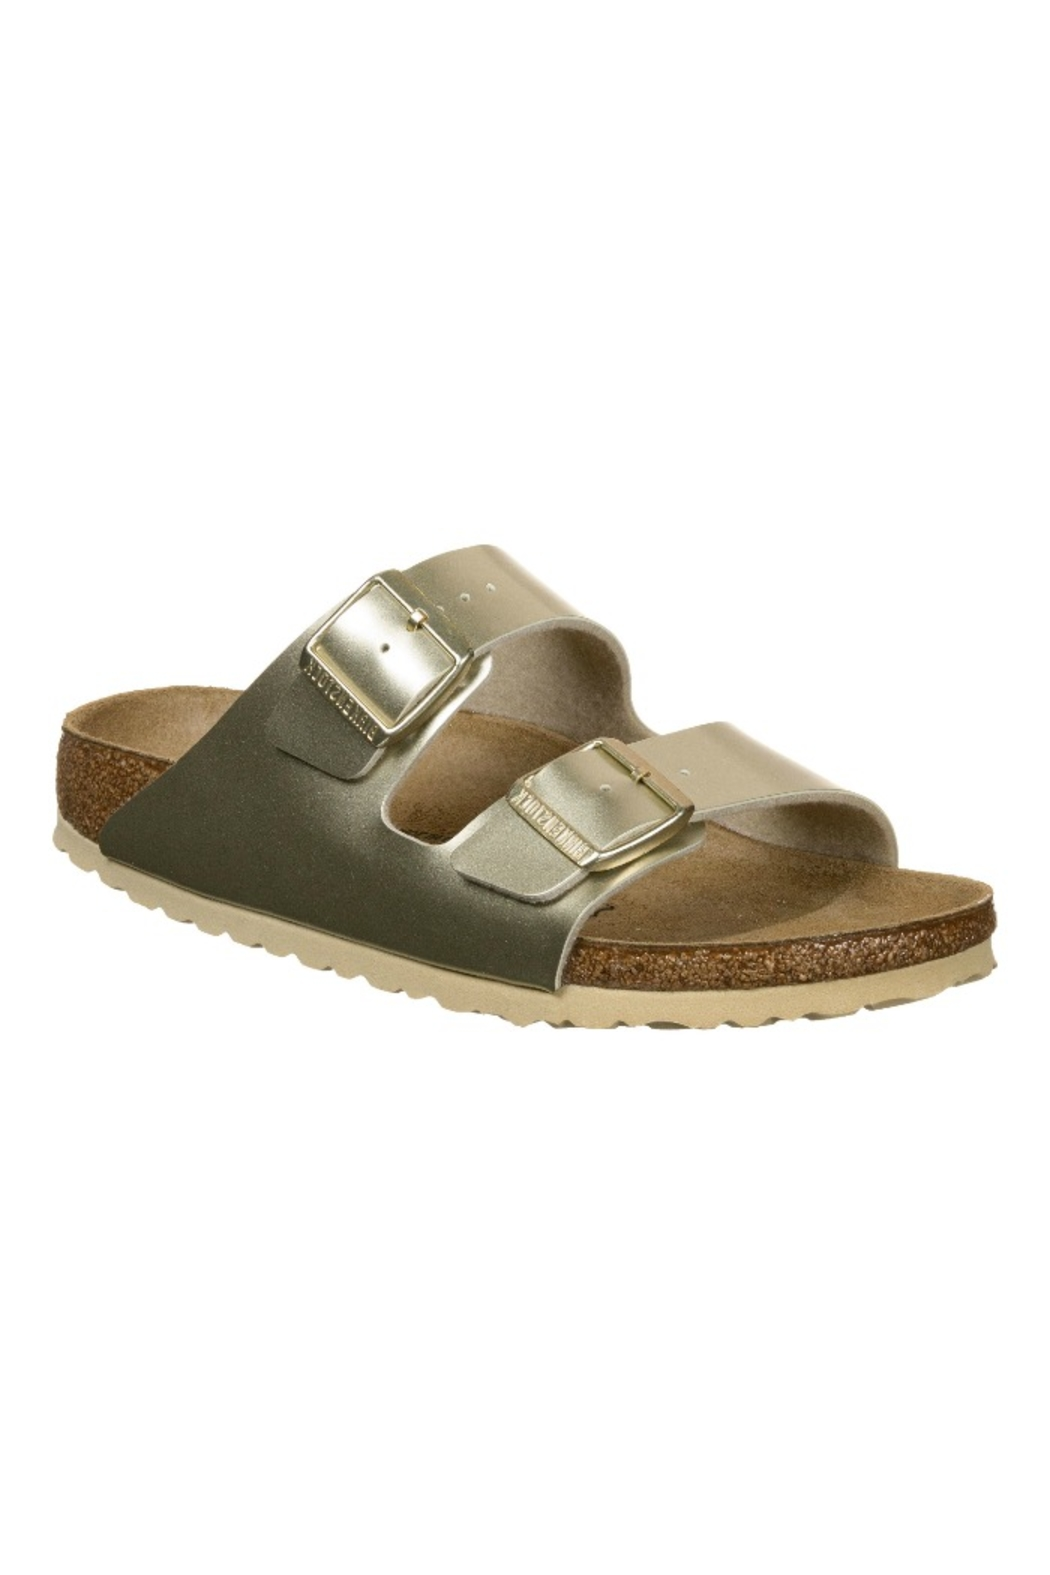 Birkenstock Arizona Kids in Gold - Front Cropped Image